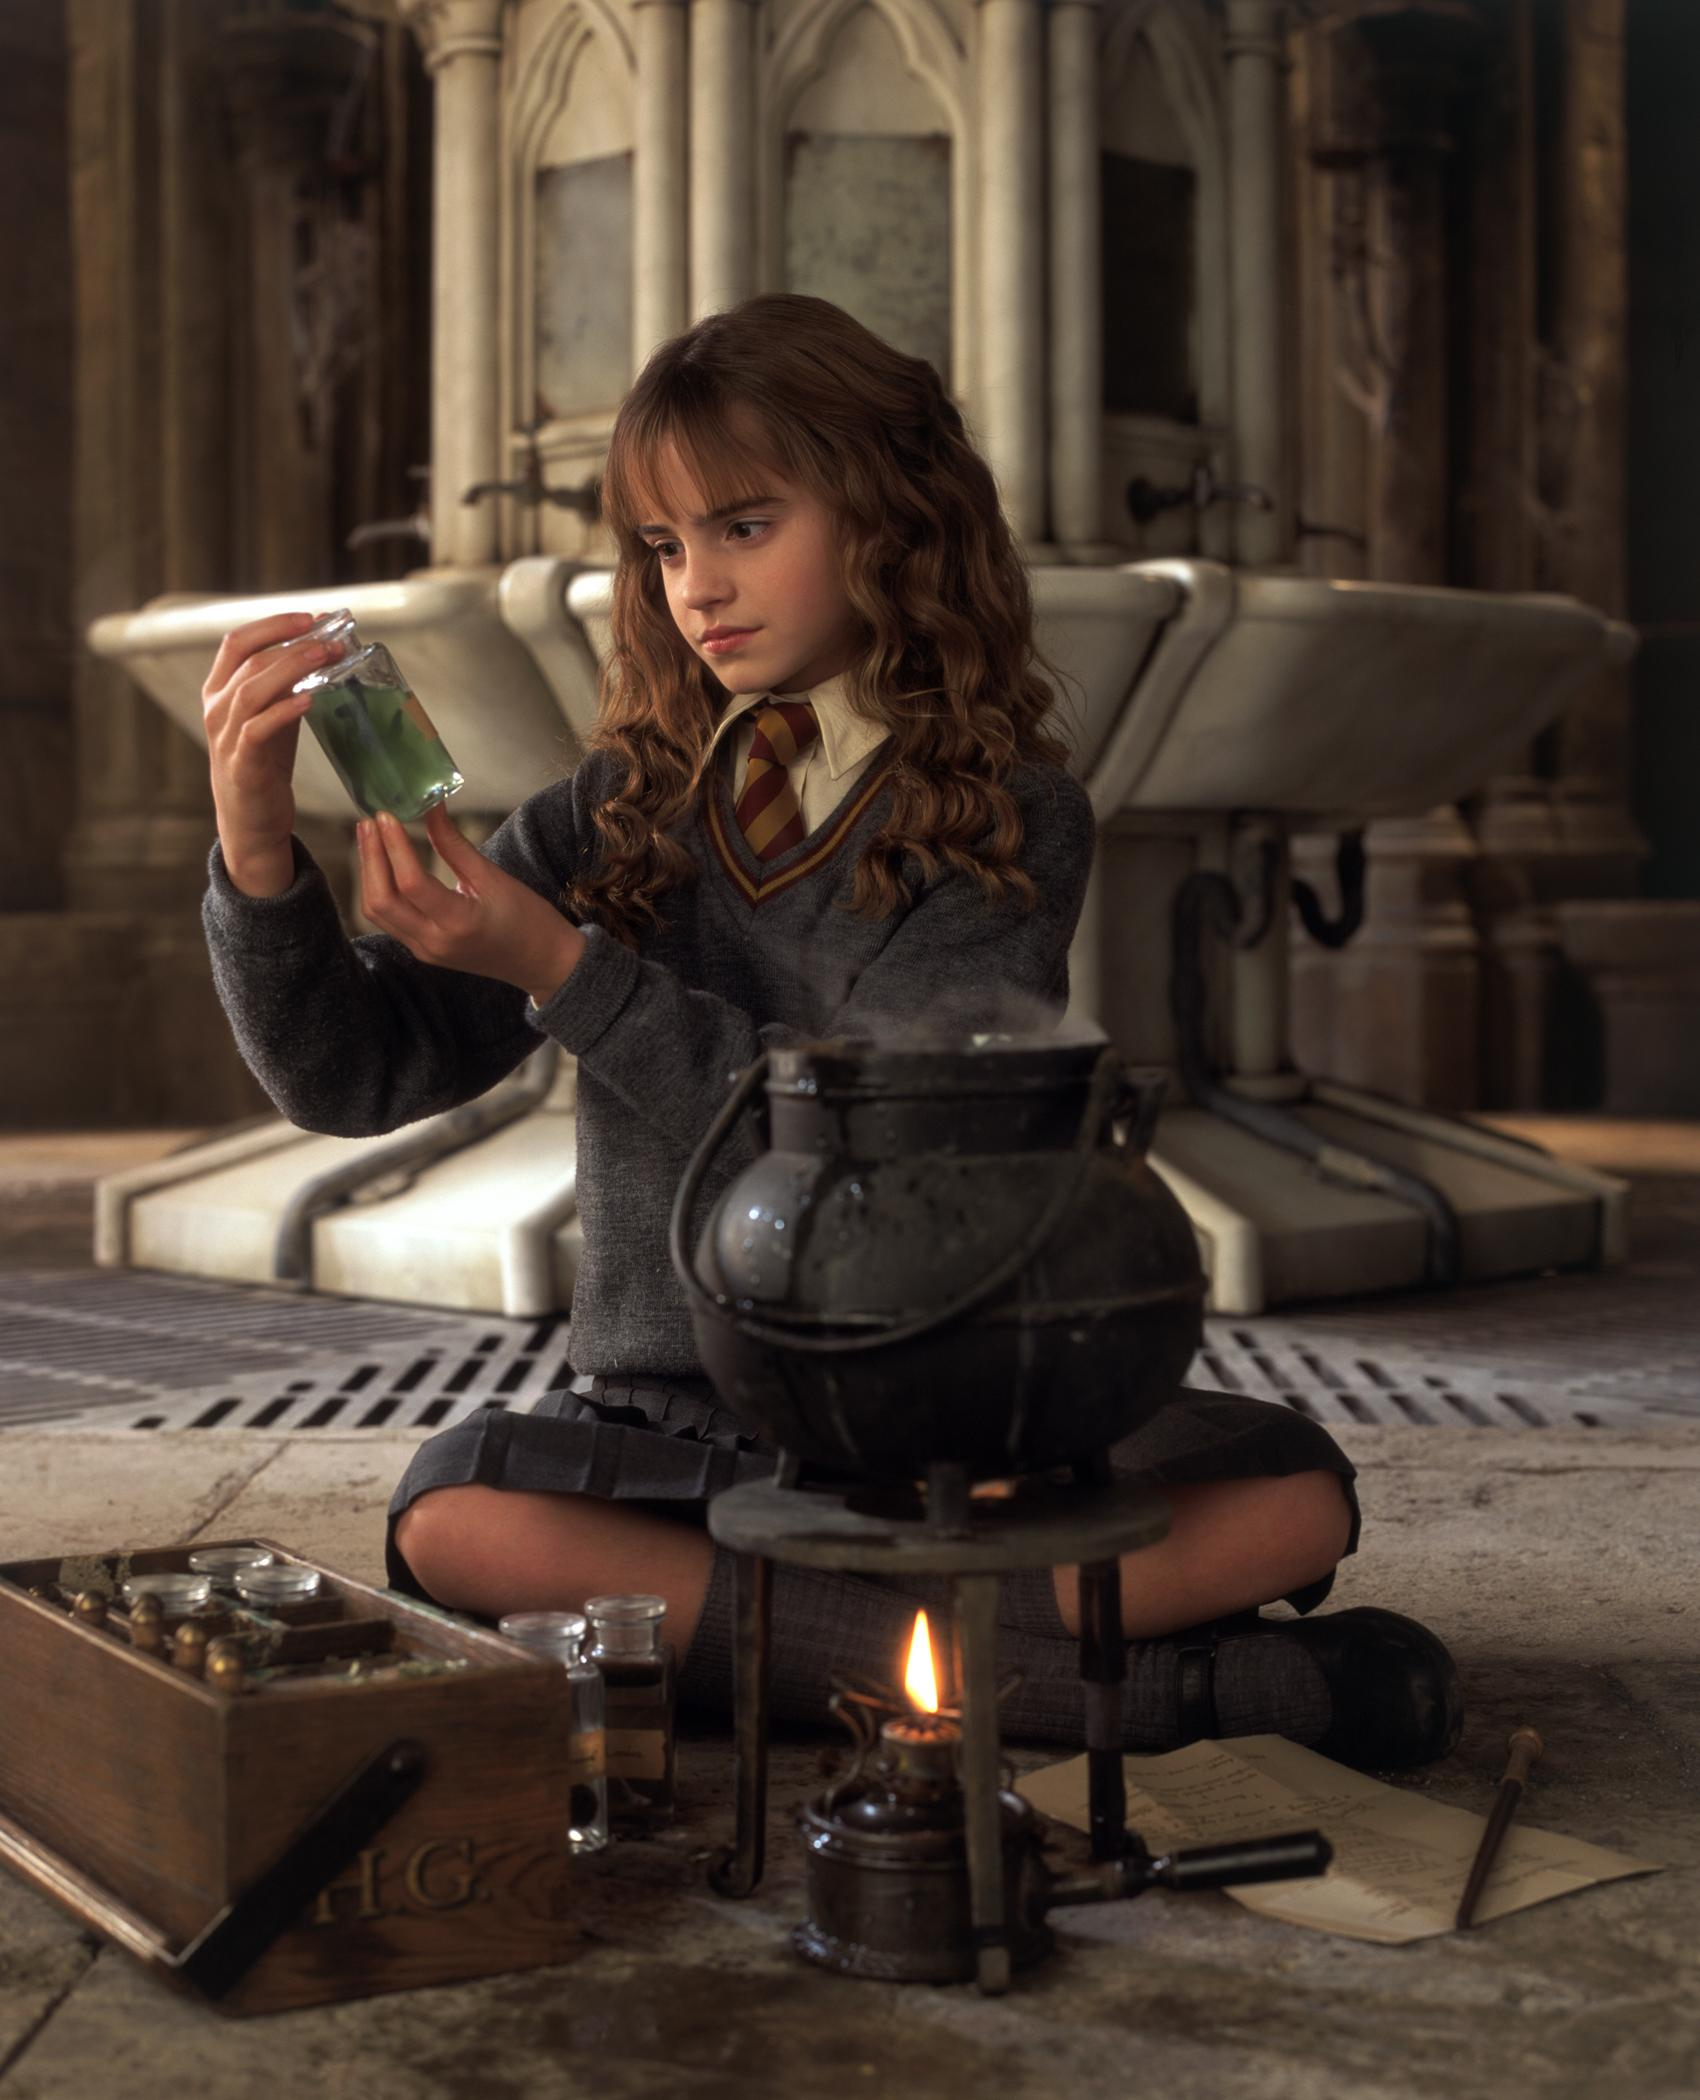 http://gabtor.files.wordpress.com/2010/10/harry_potter_and_the_chamber_of_secrets_2.jpg